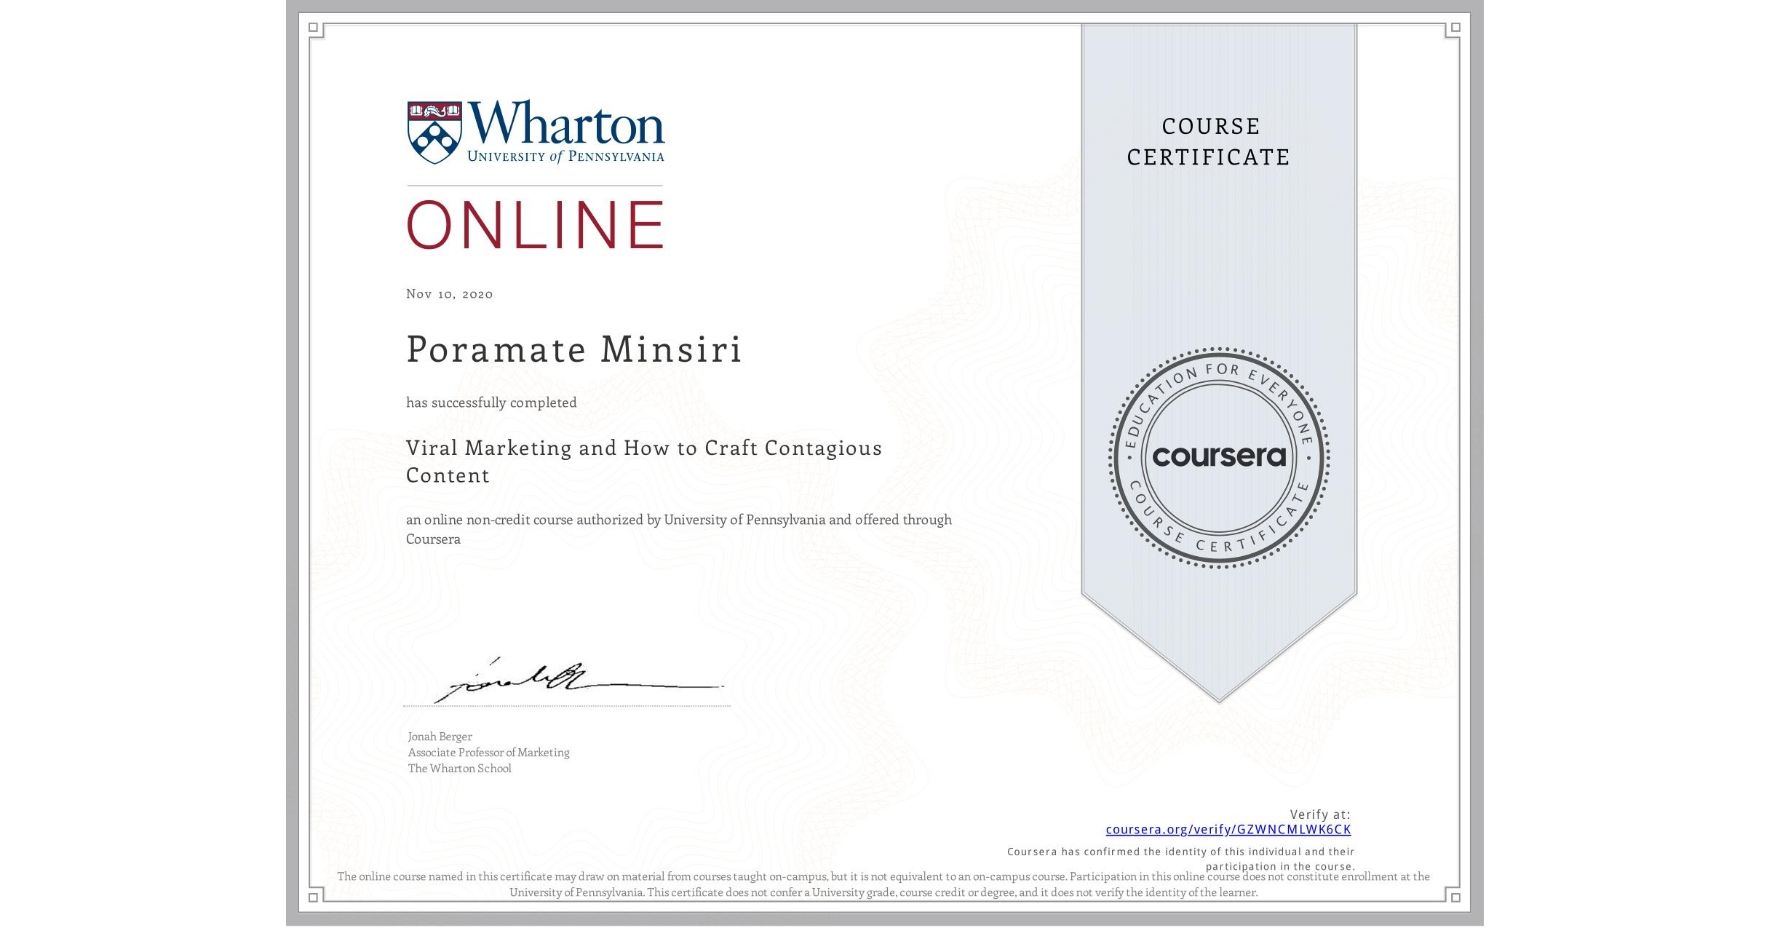 View certificate for Poramate Minsiri, Viral Marketing and How to Craft Contagious Content, an online non-credit course authorized by University of Pennsylvania and offered through Coursera